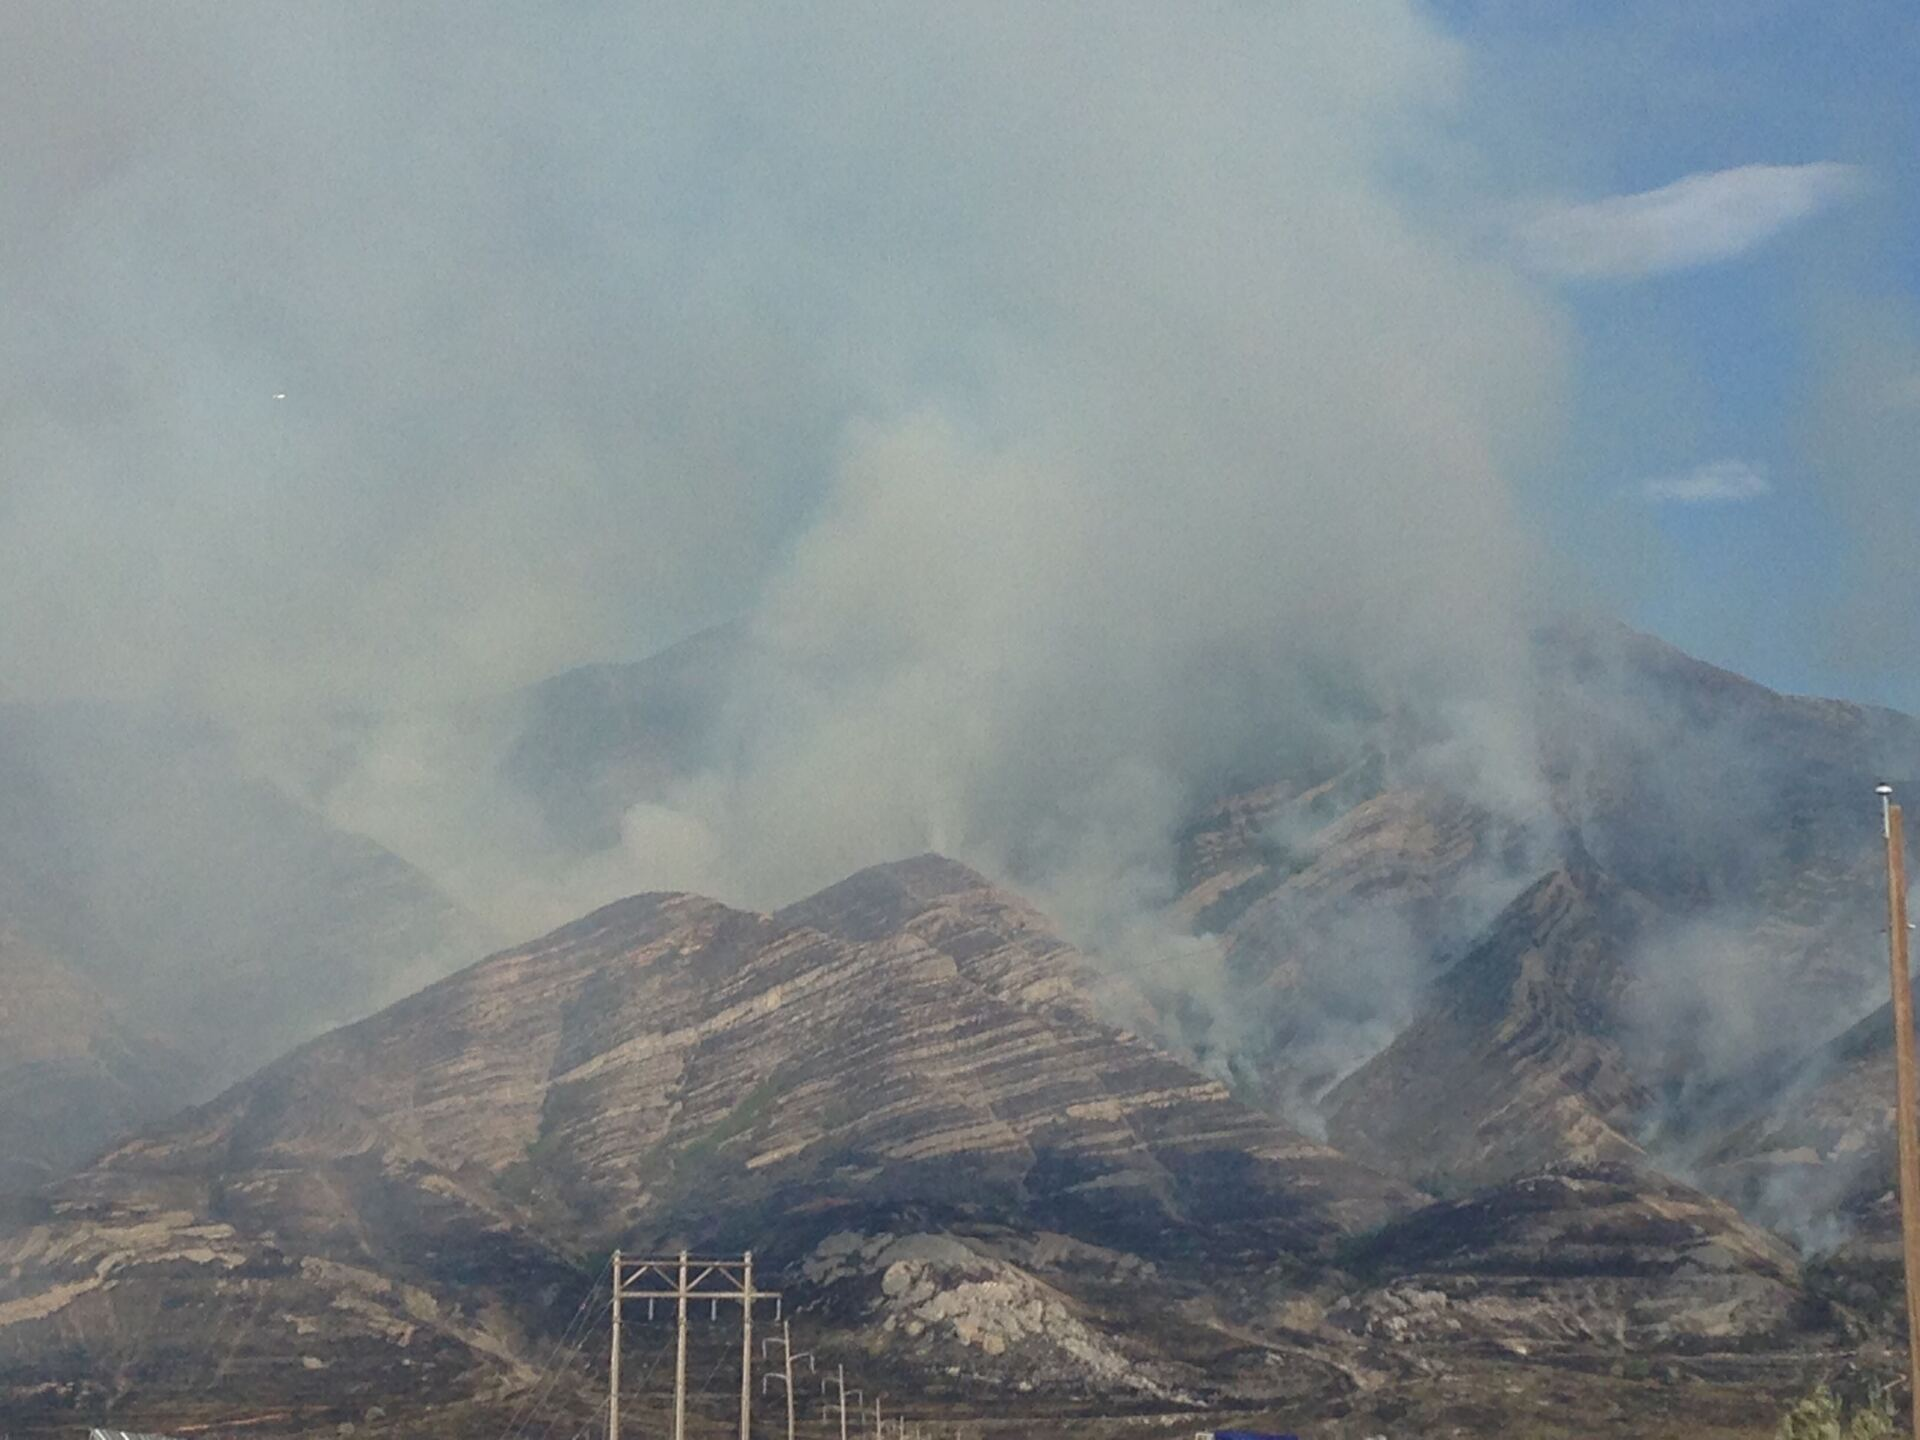 Photos: Fire crews save Tooele Co. neighborhood from close call with 'Green RavineFire'